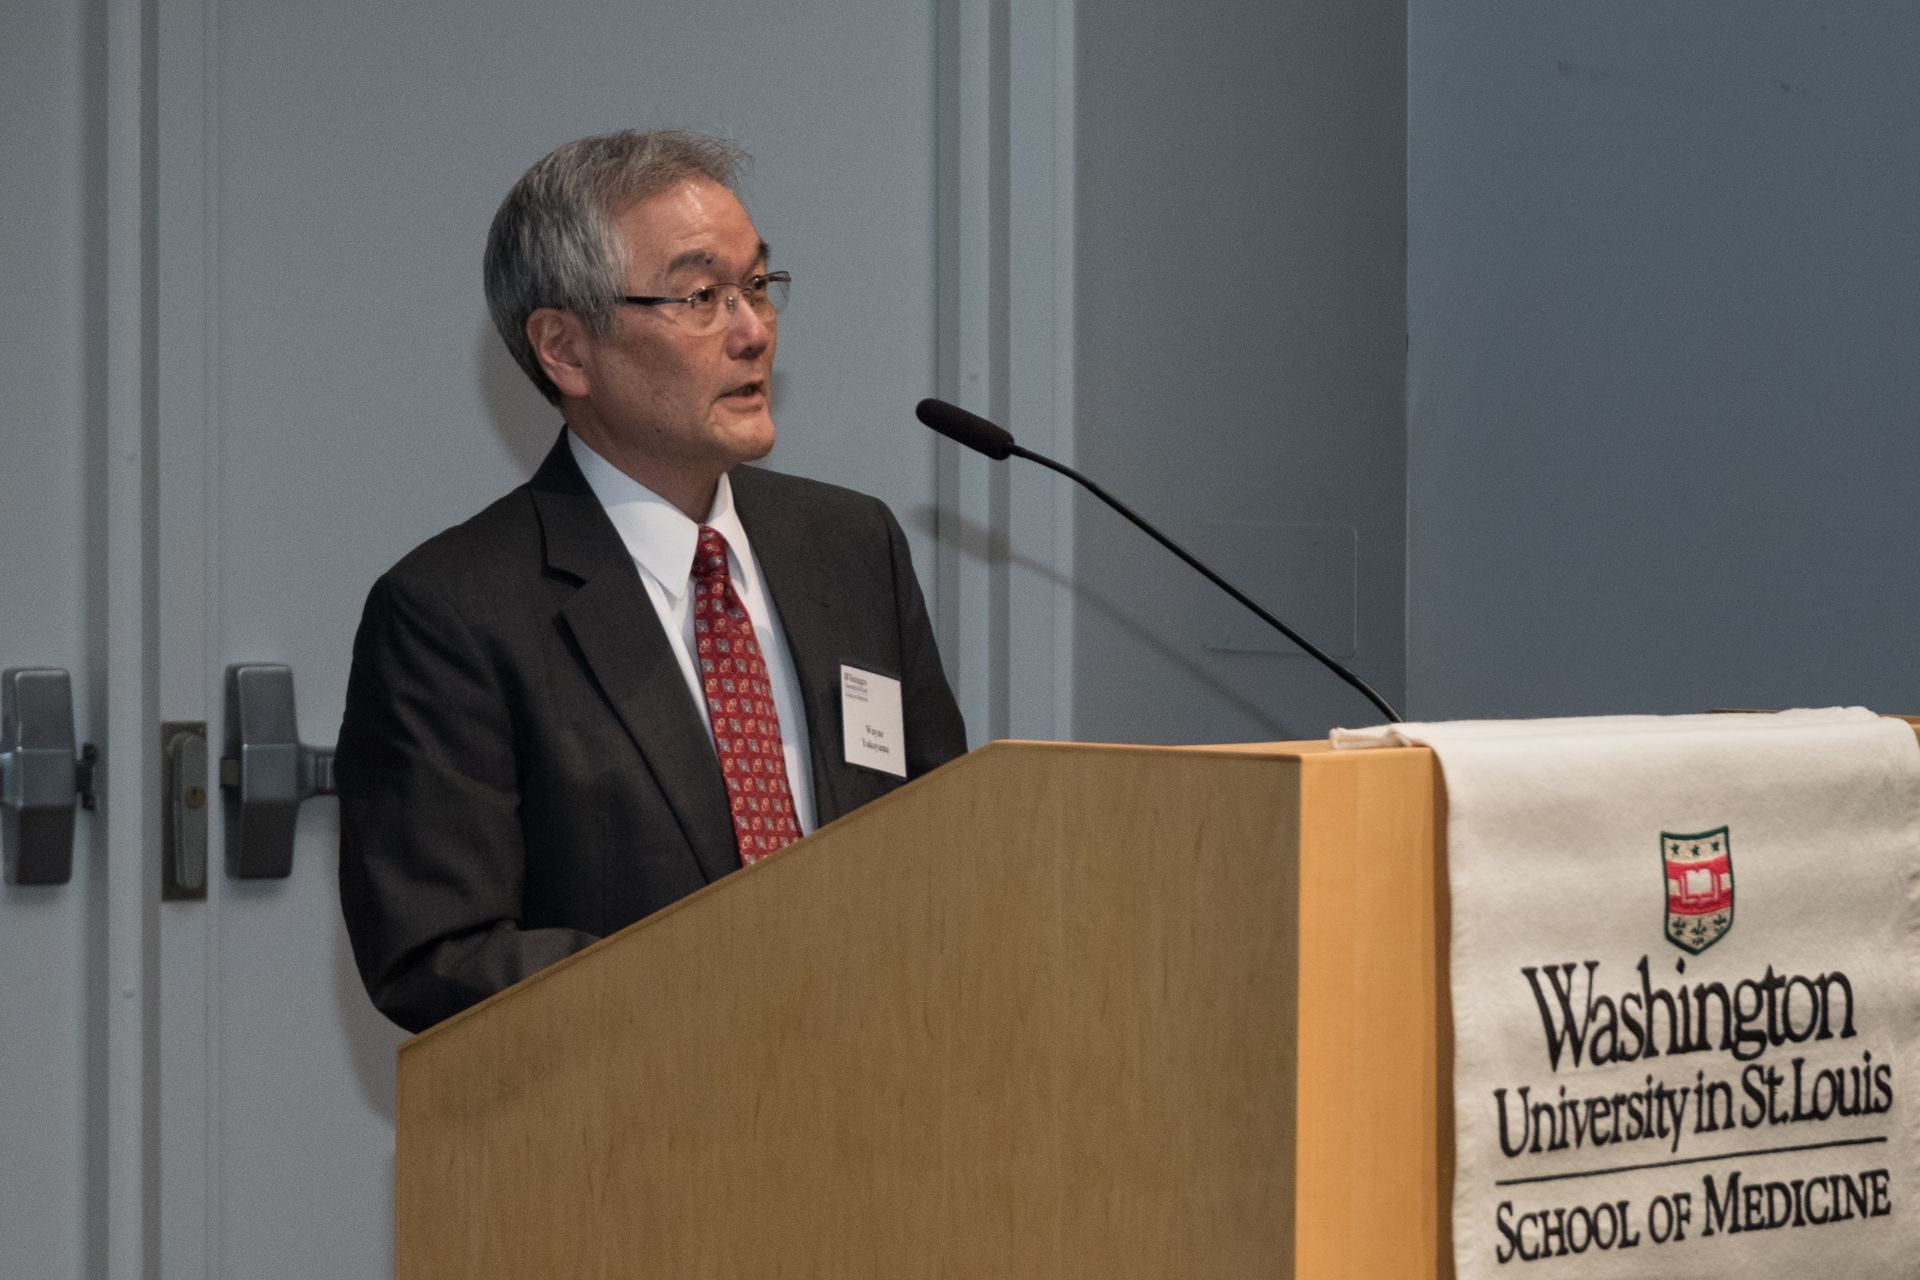 Associate Director Dr. Wayne Yokoyama presents New Insights into Human Diseases Caused by Immune System Dysfunction.